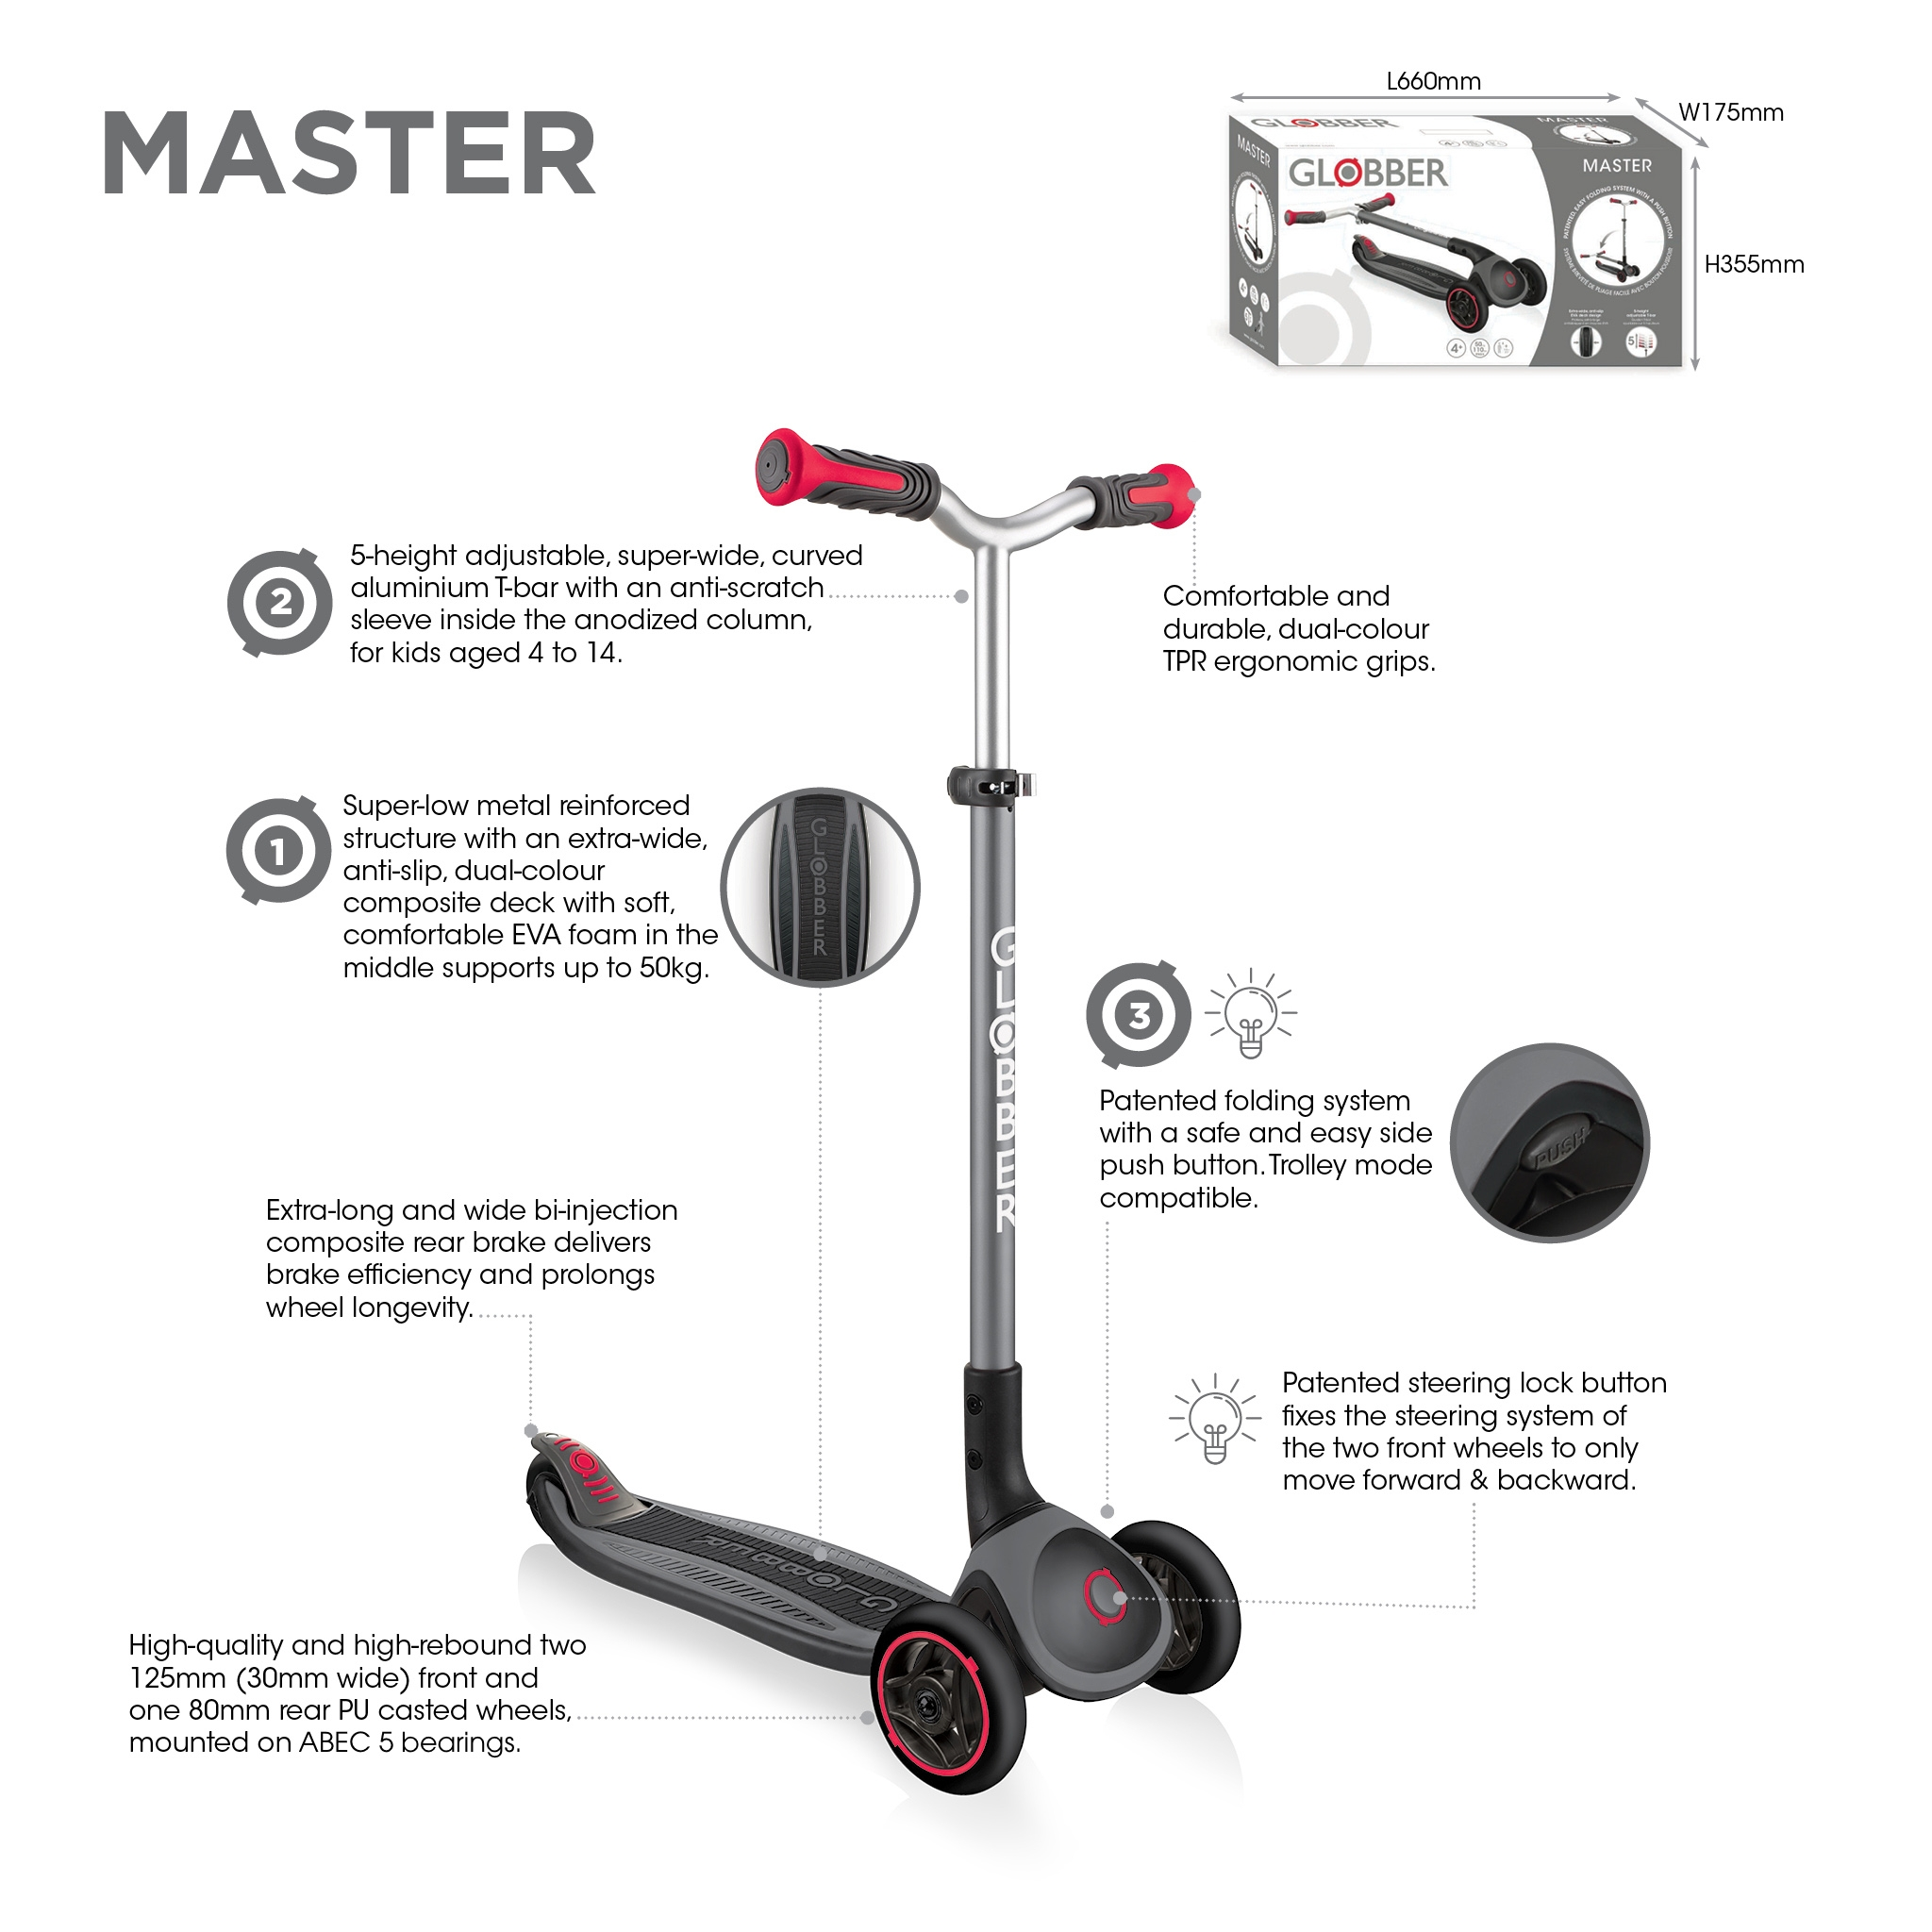 Globber-MASTER-premium-3-wheel-adjustable-scooter-for-kids-aged-4-to-14 2